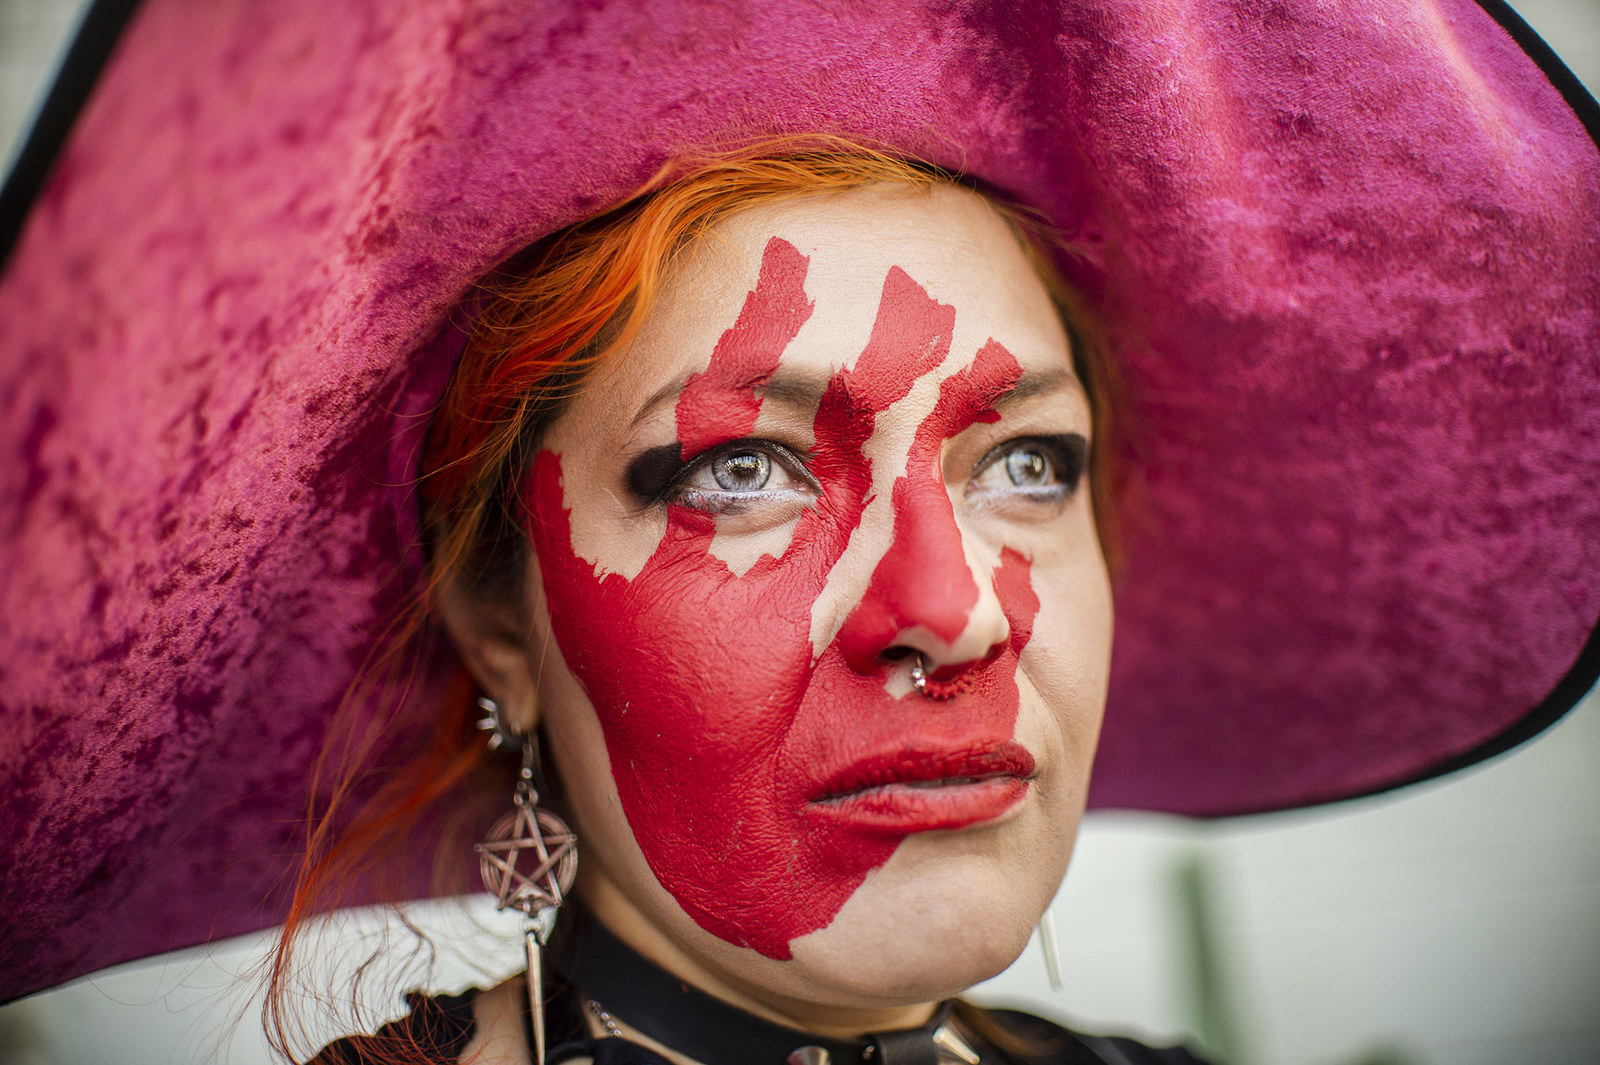 A woman with her face painted takes part in a protest against gender violence in Mexico City on Feb. 2.